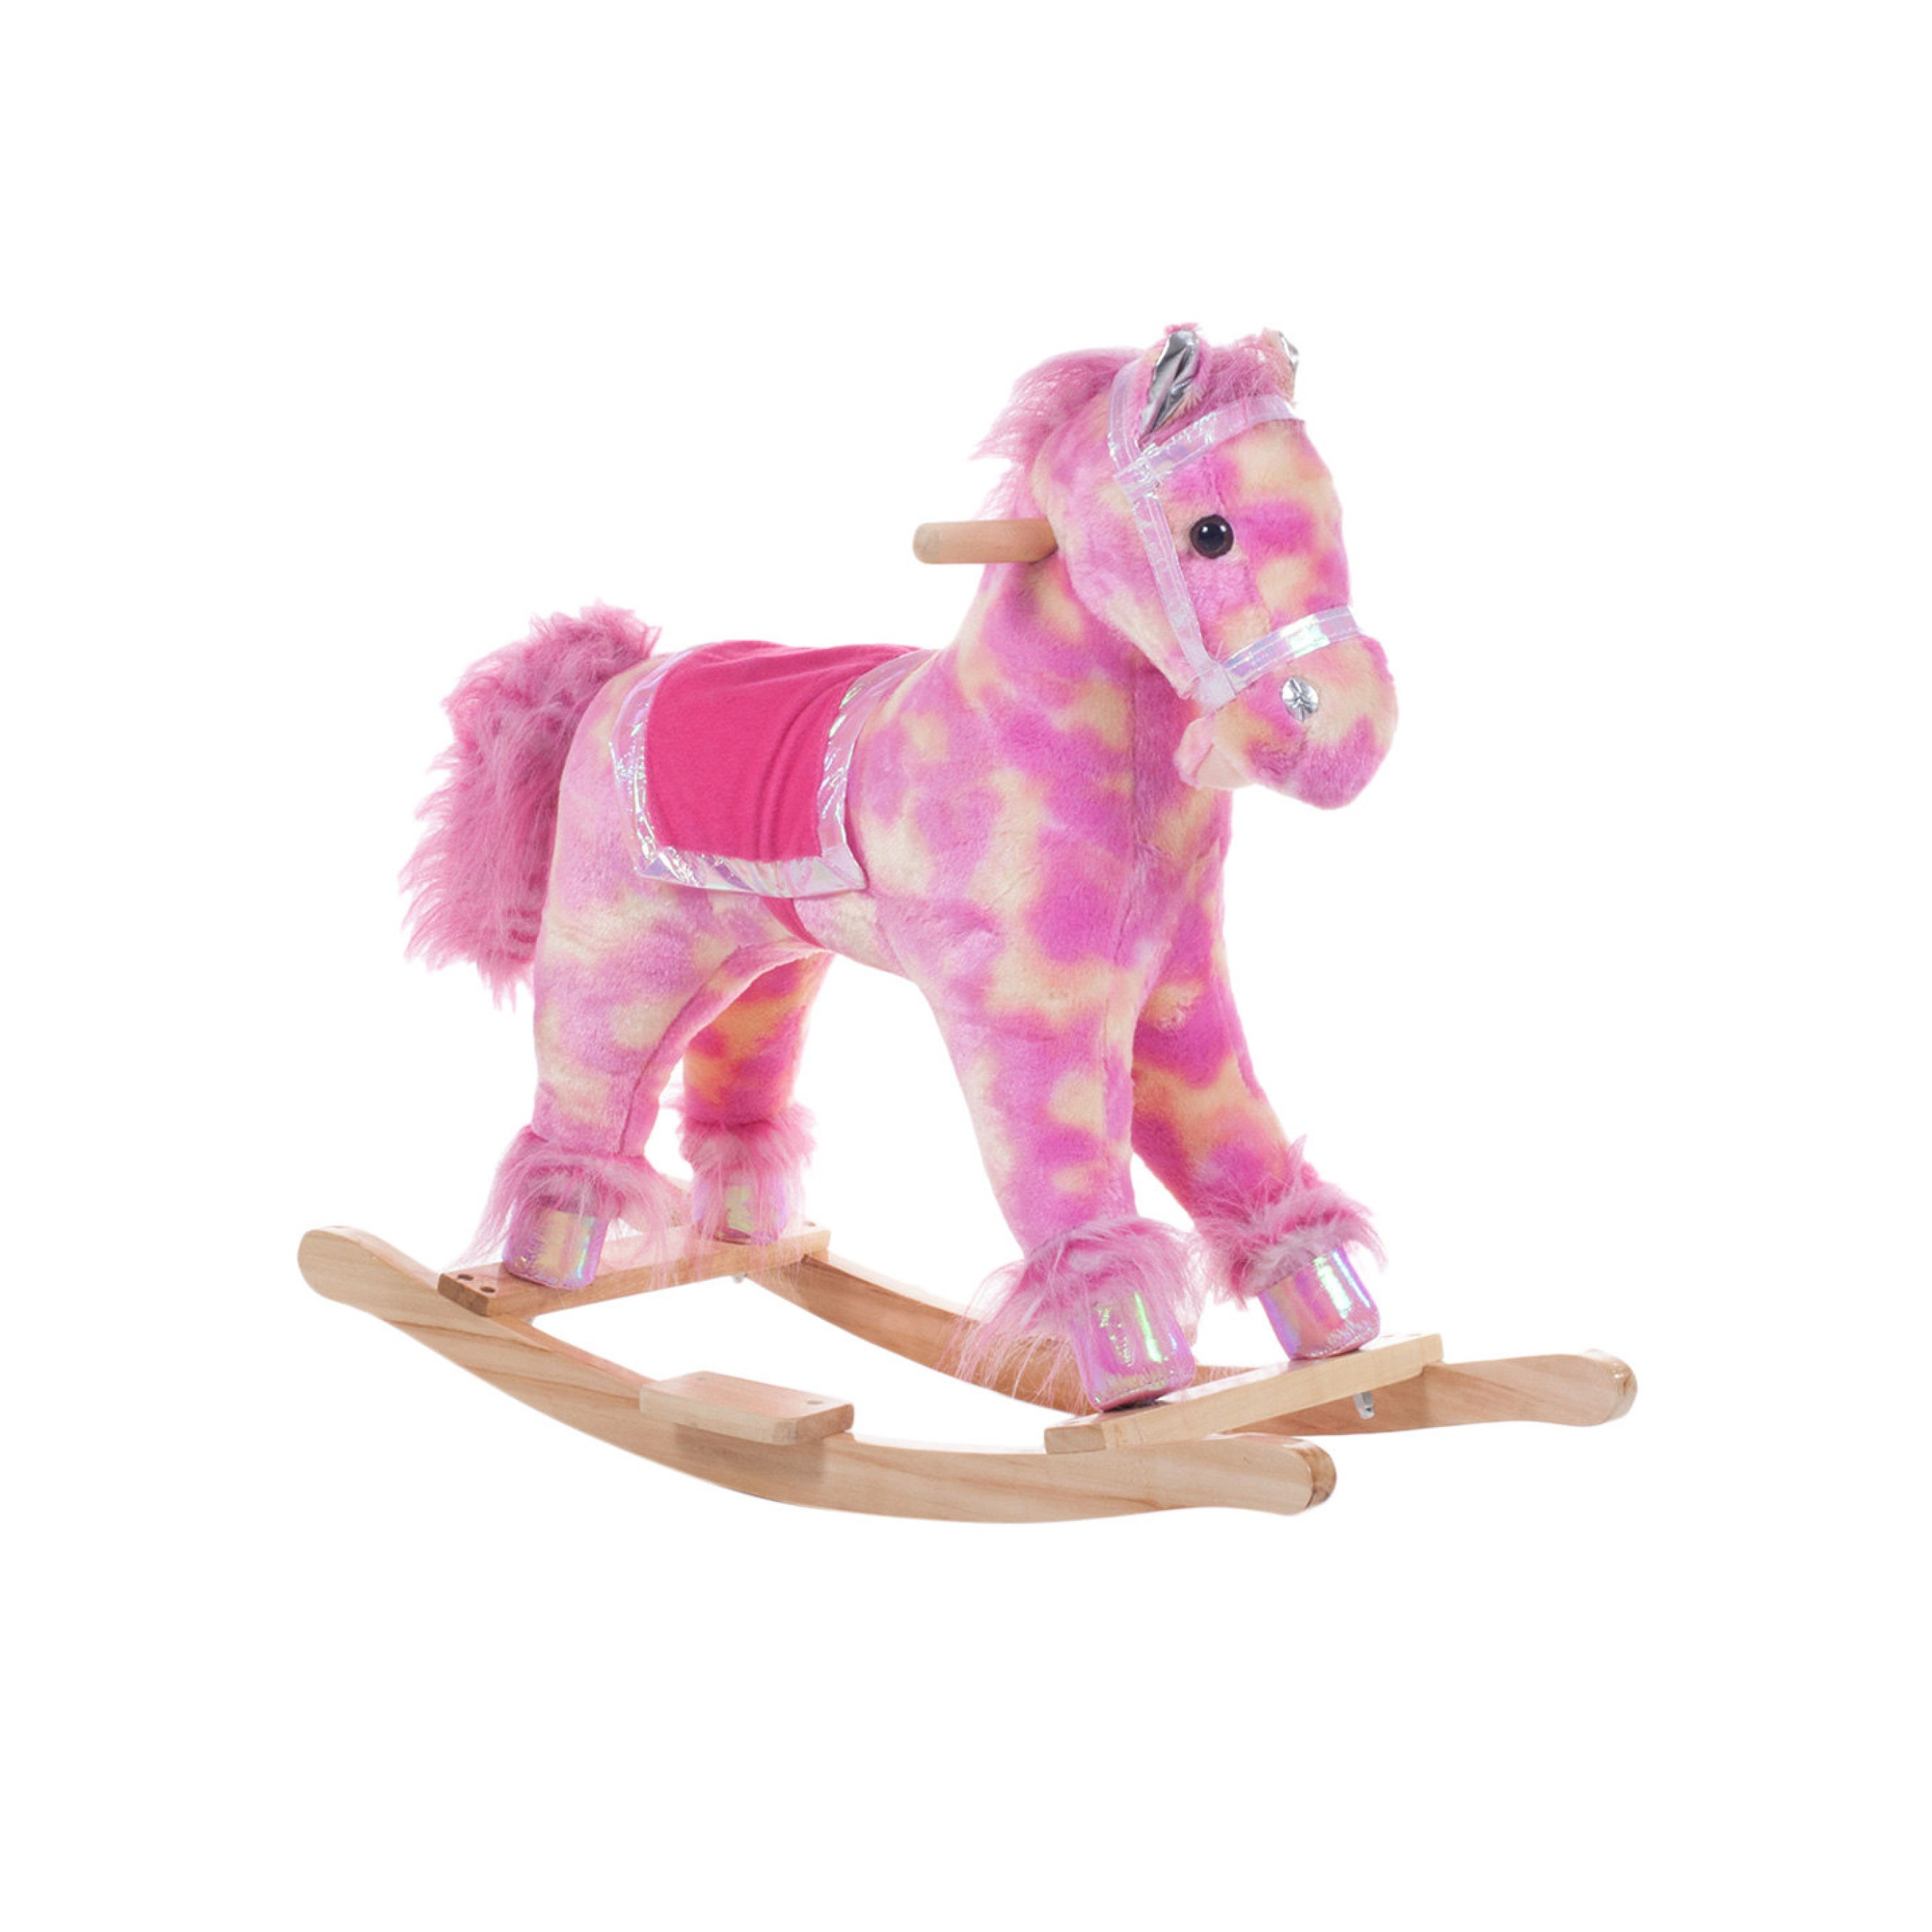 Idea Nuova Jump and Dream Pink Wood Horse Rocking Chair (...